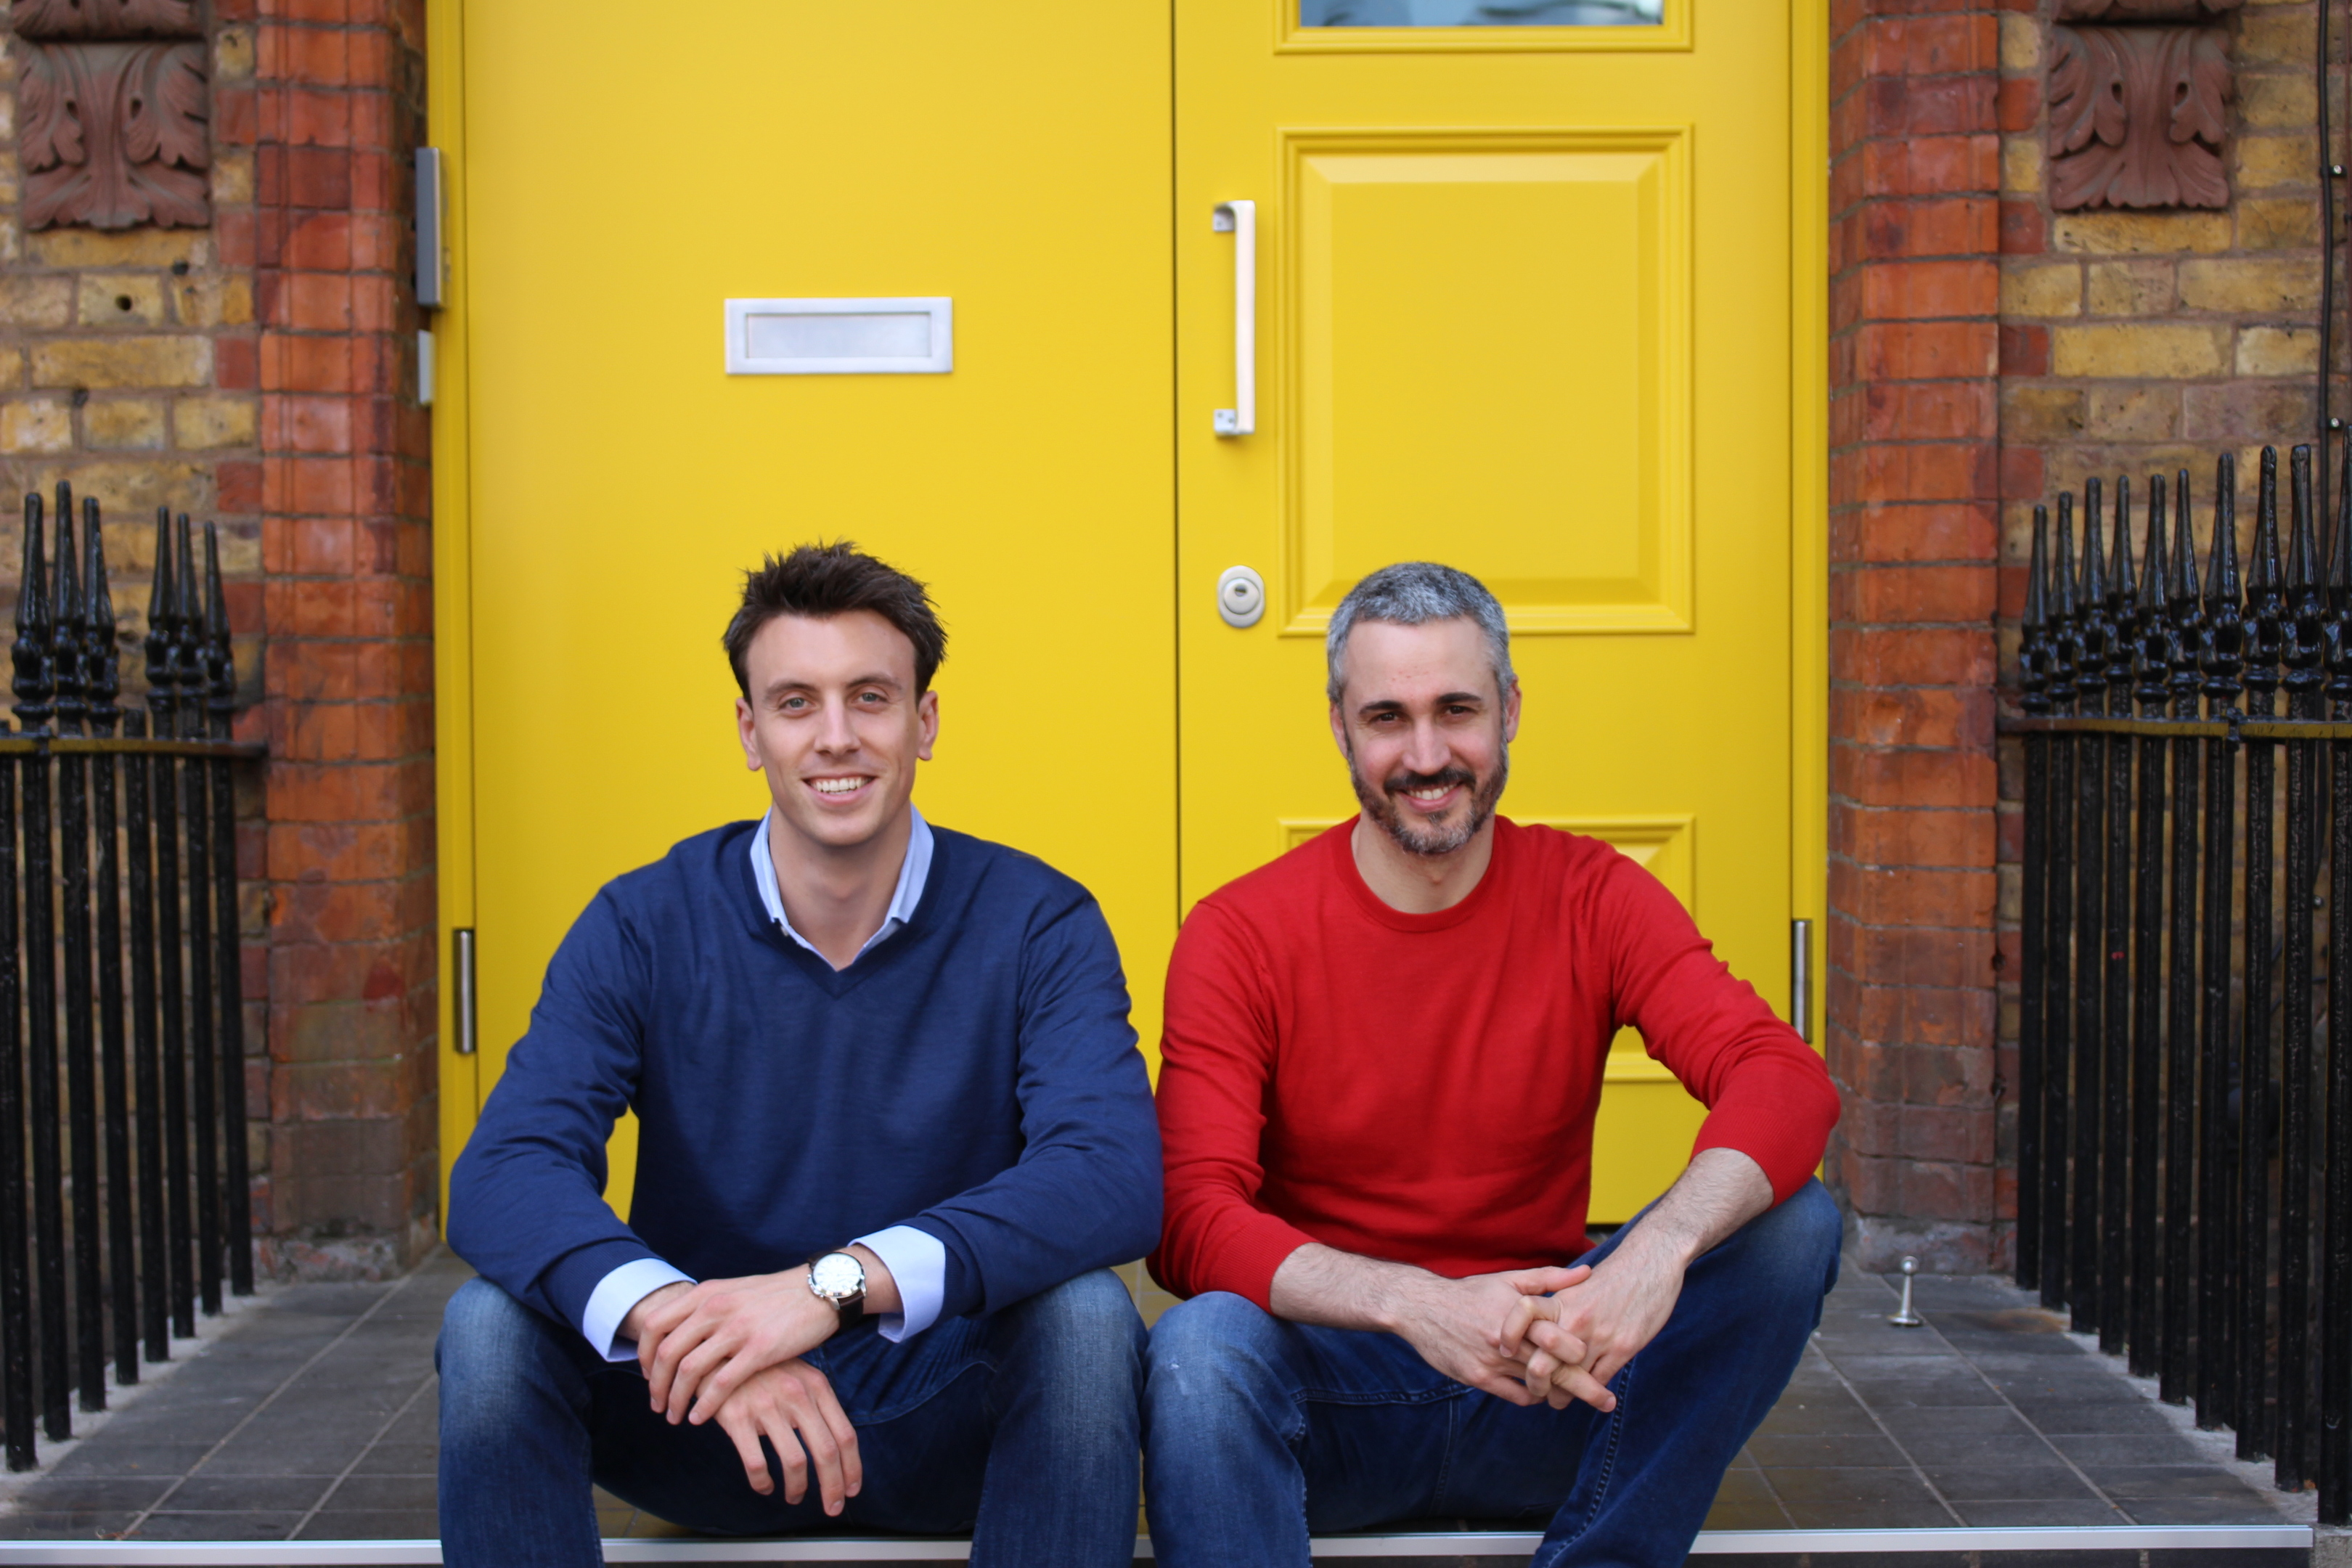 Simon Phelan, co-founder and CEO of HomeTree, left, alongside Andreu Tobella, the firm's other co-founder and its chief product officer.